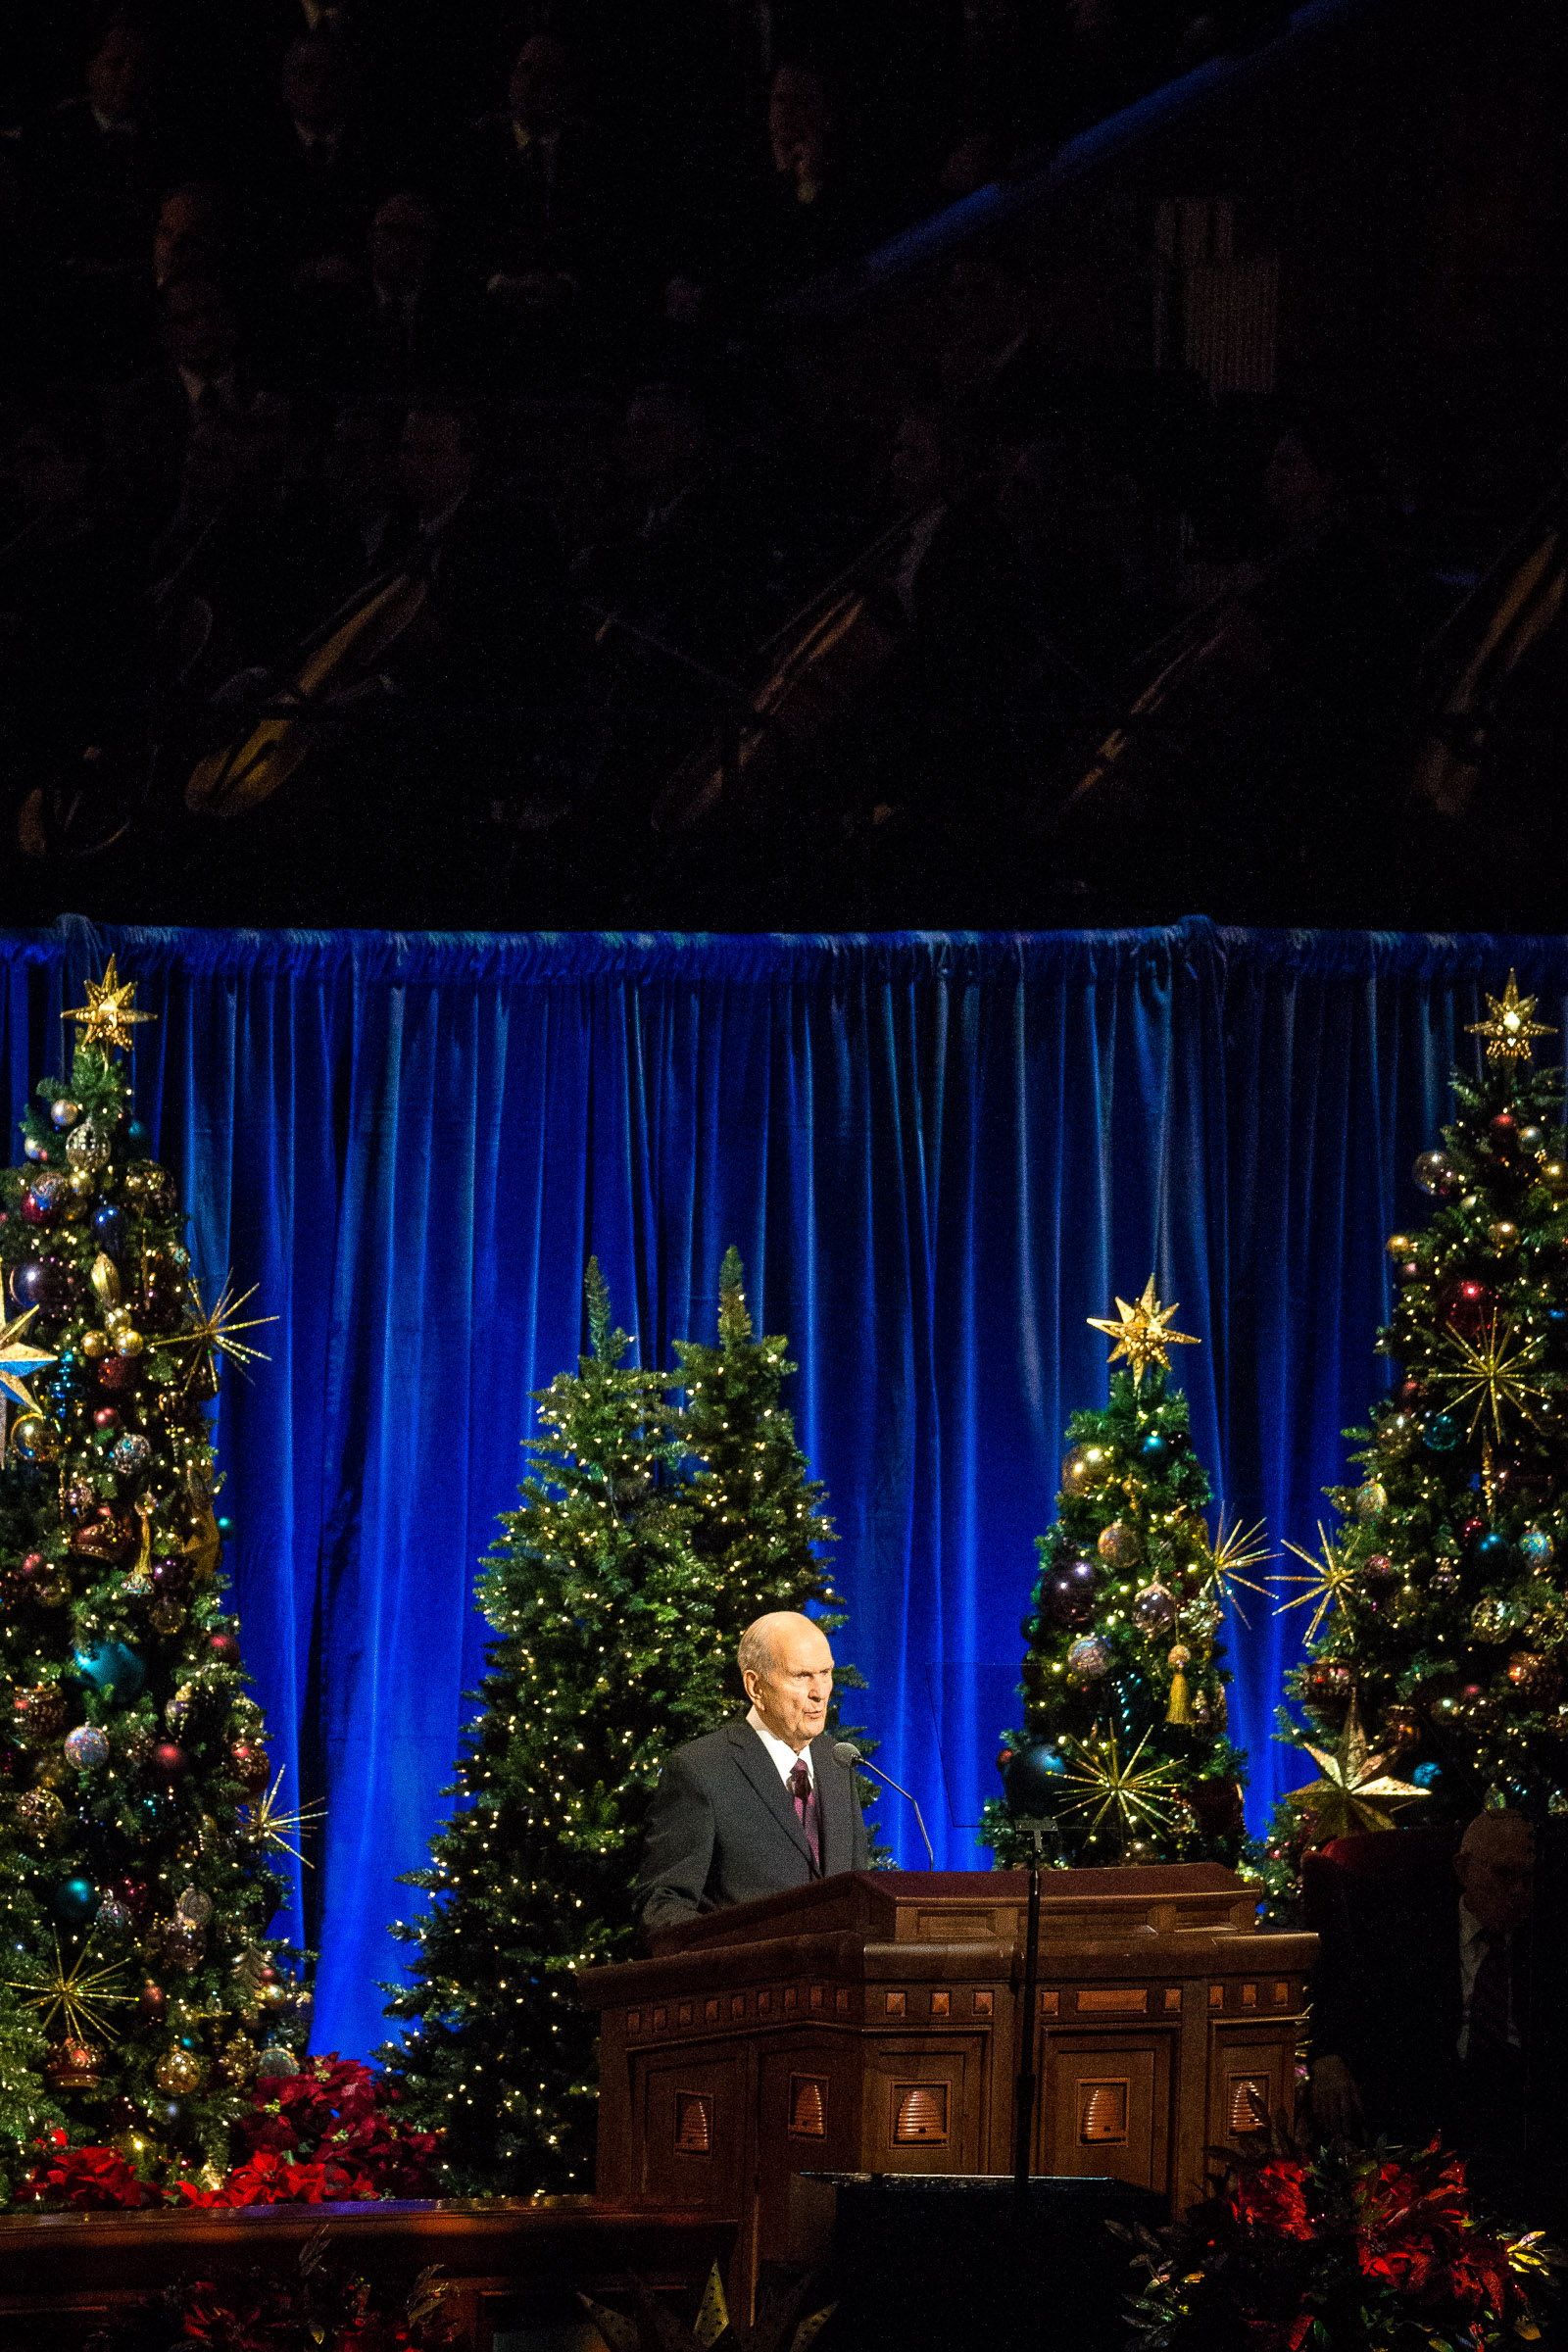 President Russell M. Nelson of The Church of Jesus Christ of Latter-day Saints speaks during the First Presidency's Christmas Devotional in the Conference Center in Salt Lake City on Sunday, Dec. 2, 2018.